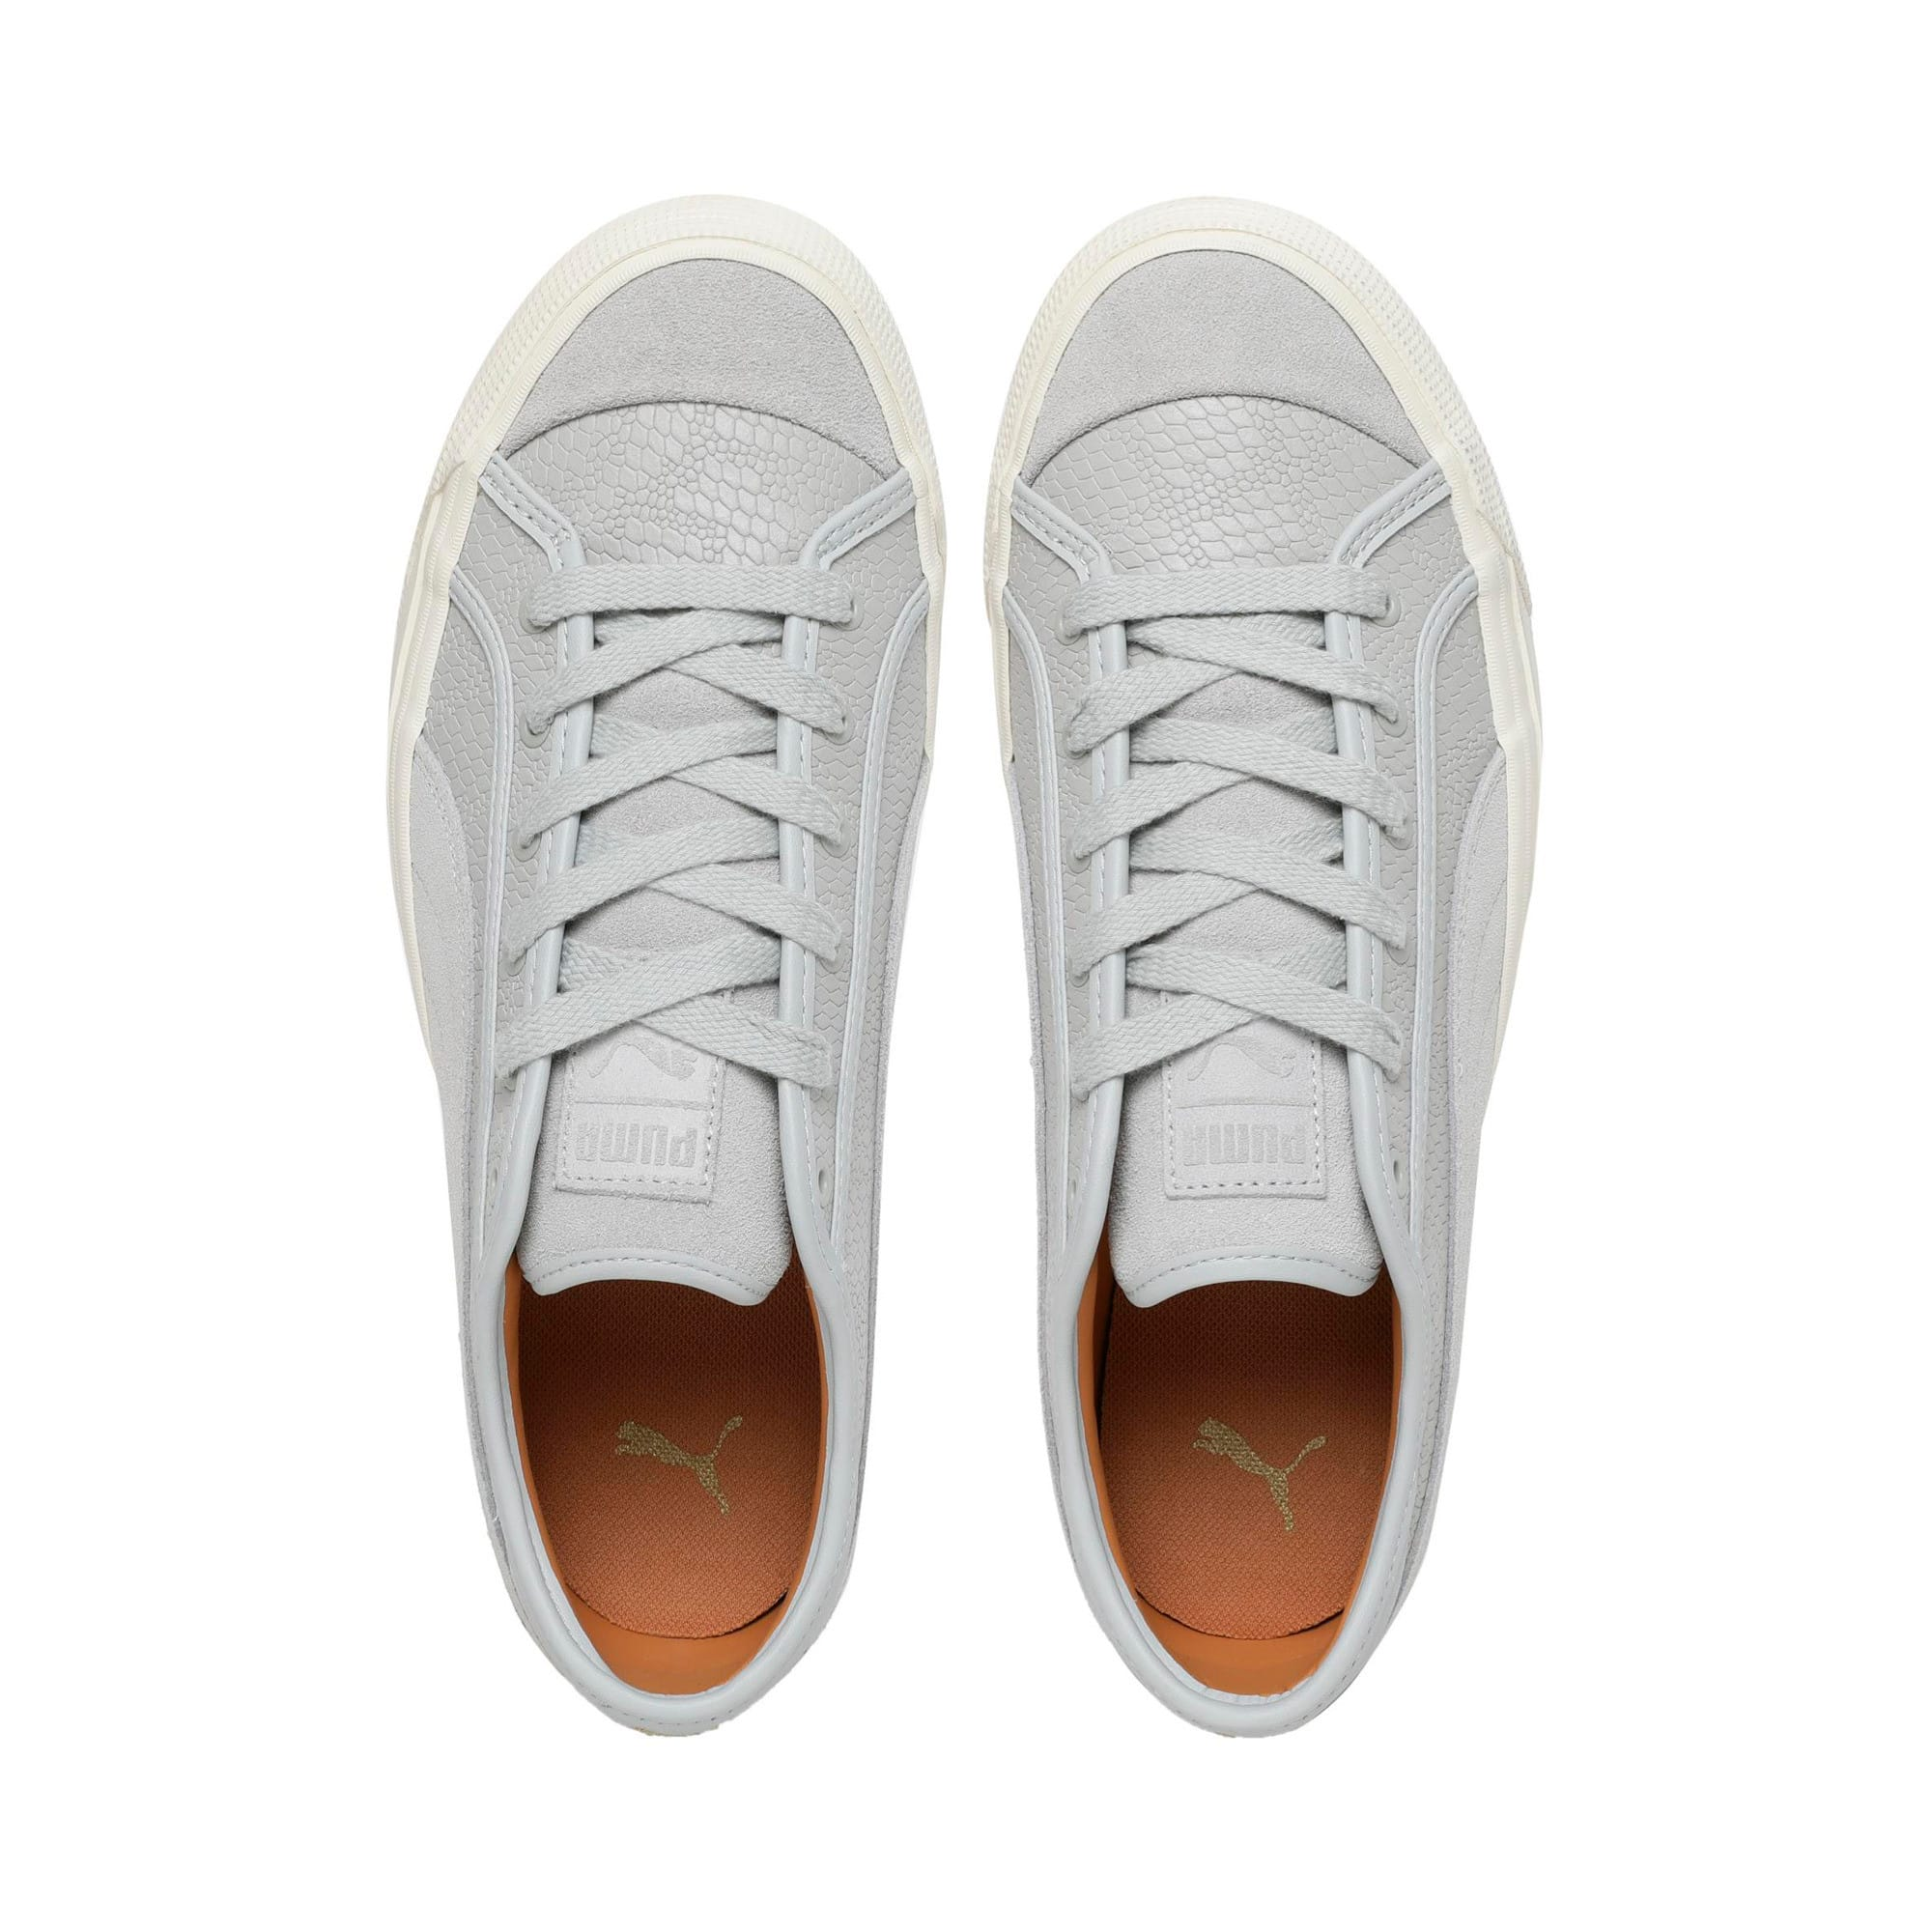 Thumbnail 6 of Capri Sneakers, GryViolt-GryViolet-WhisprWht, medium-IND